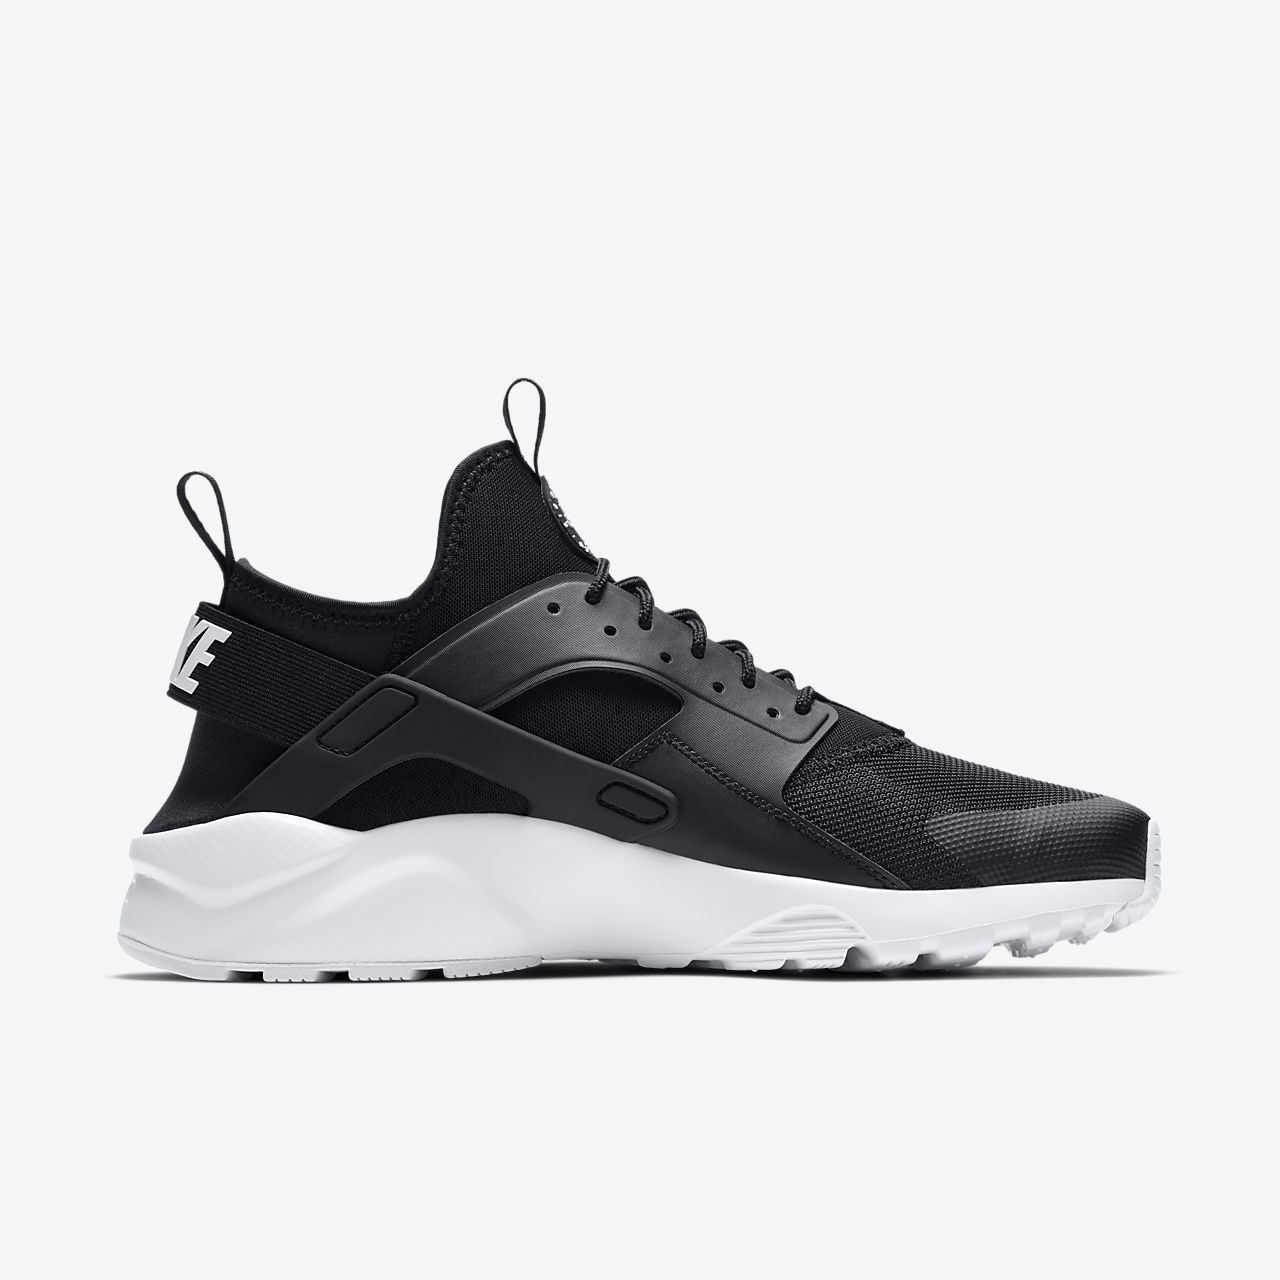 Chaussures Nike Air Huarache noires Casual homme NIHtWv6c